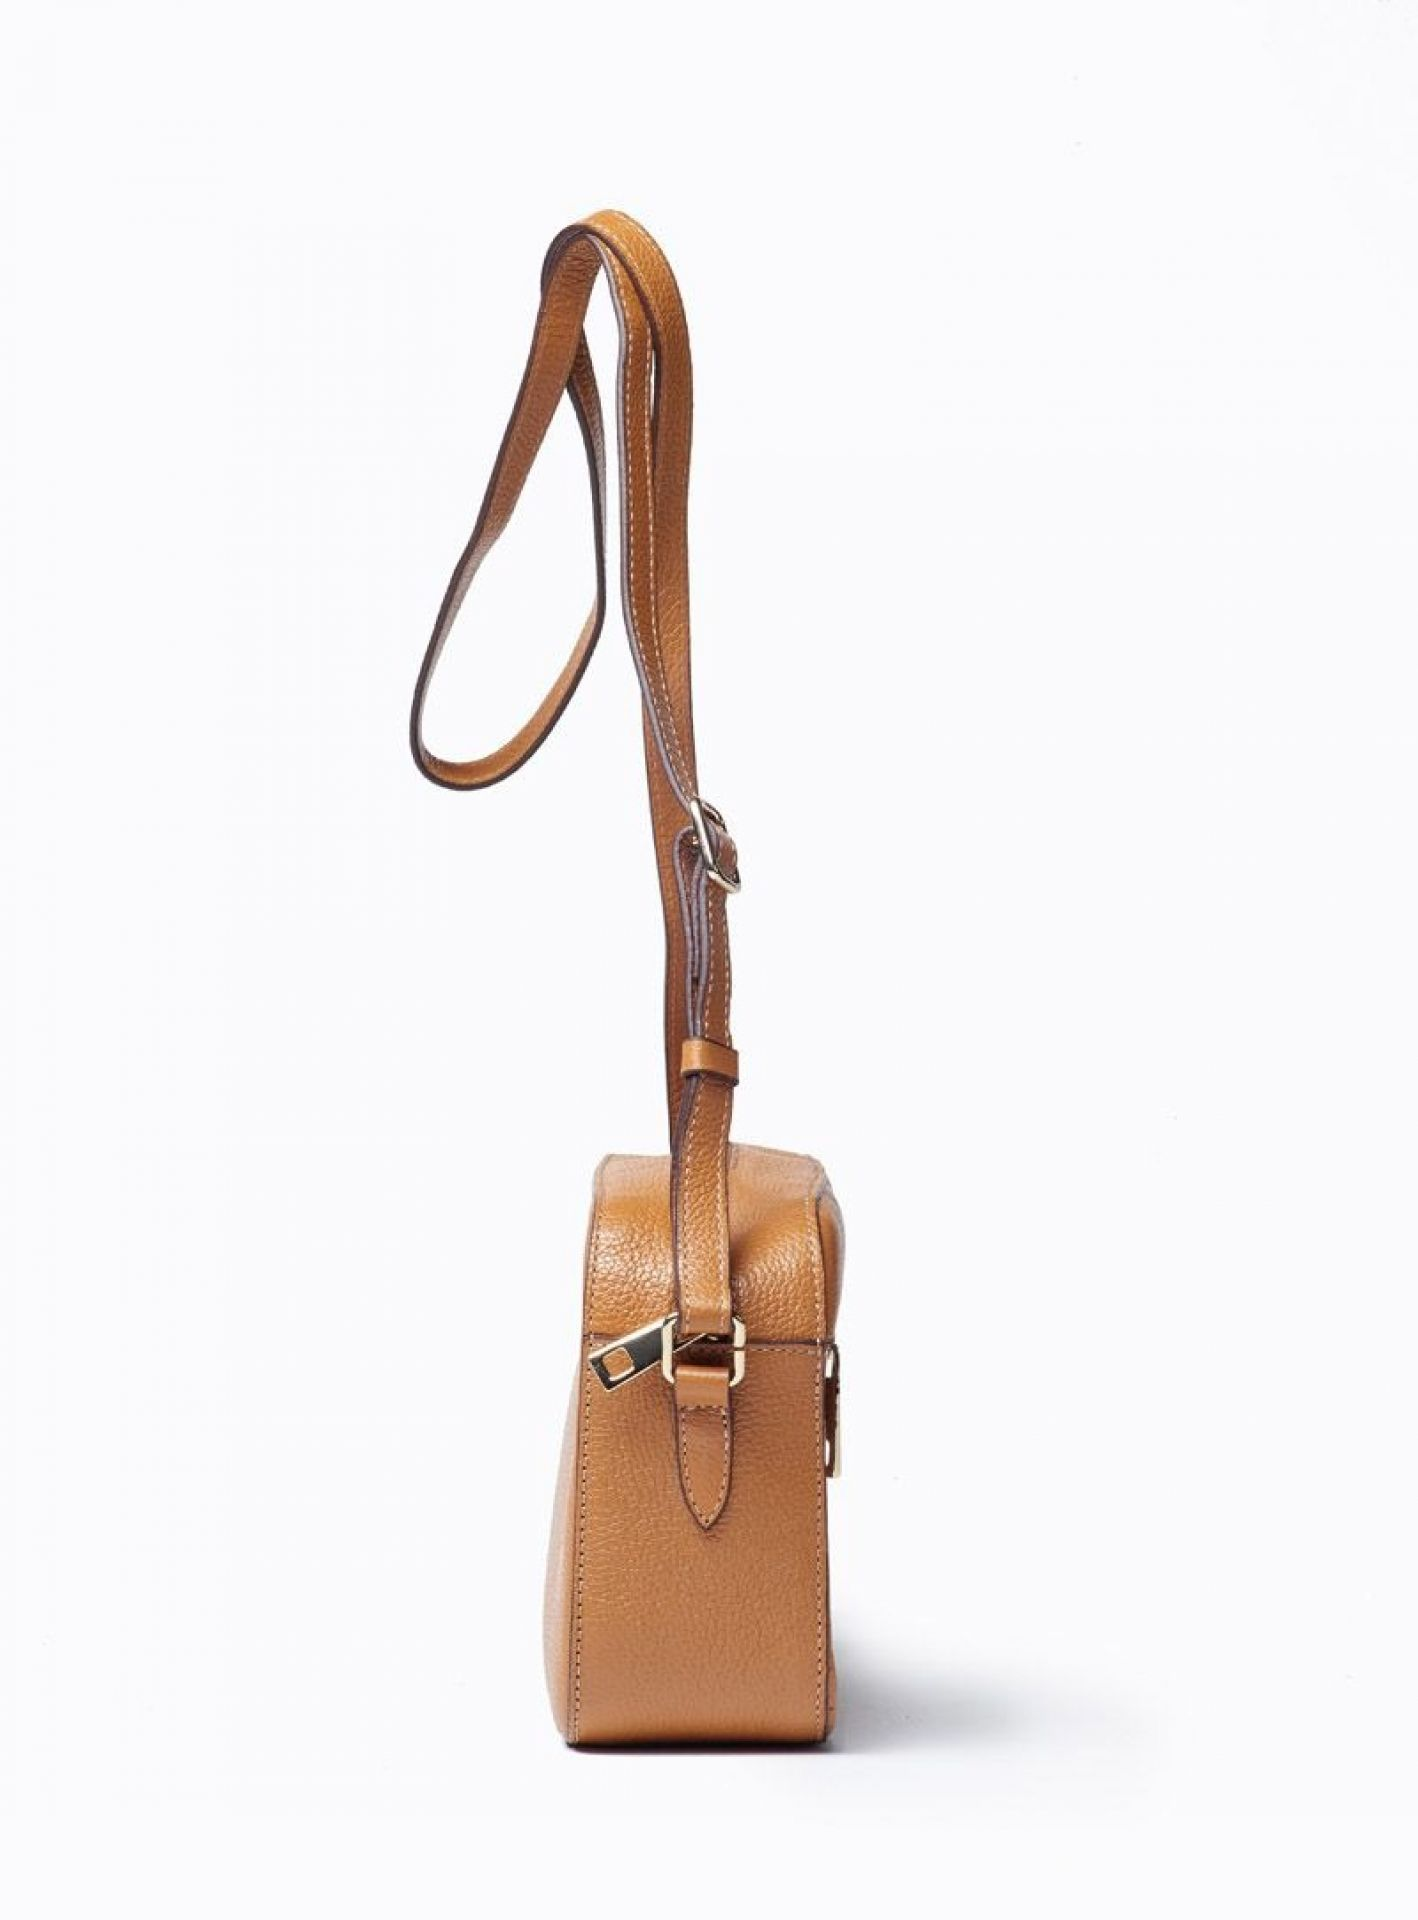 VIVER BELLE TAN LEATHER CROSSBODY BAG